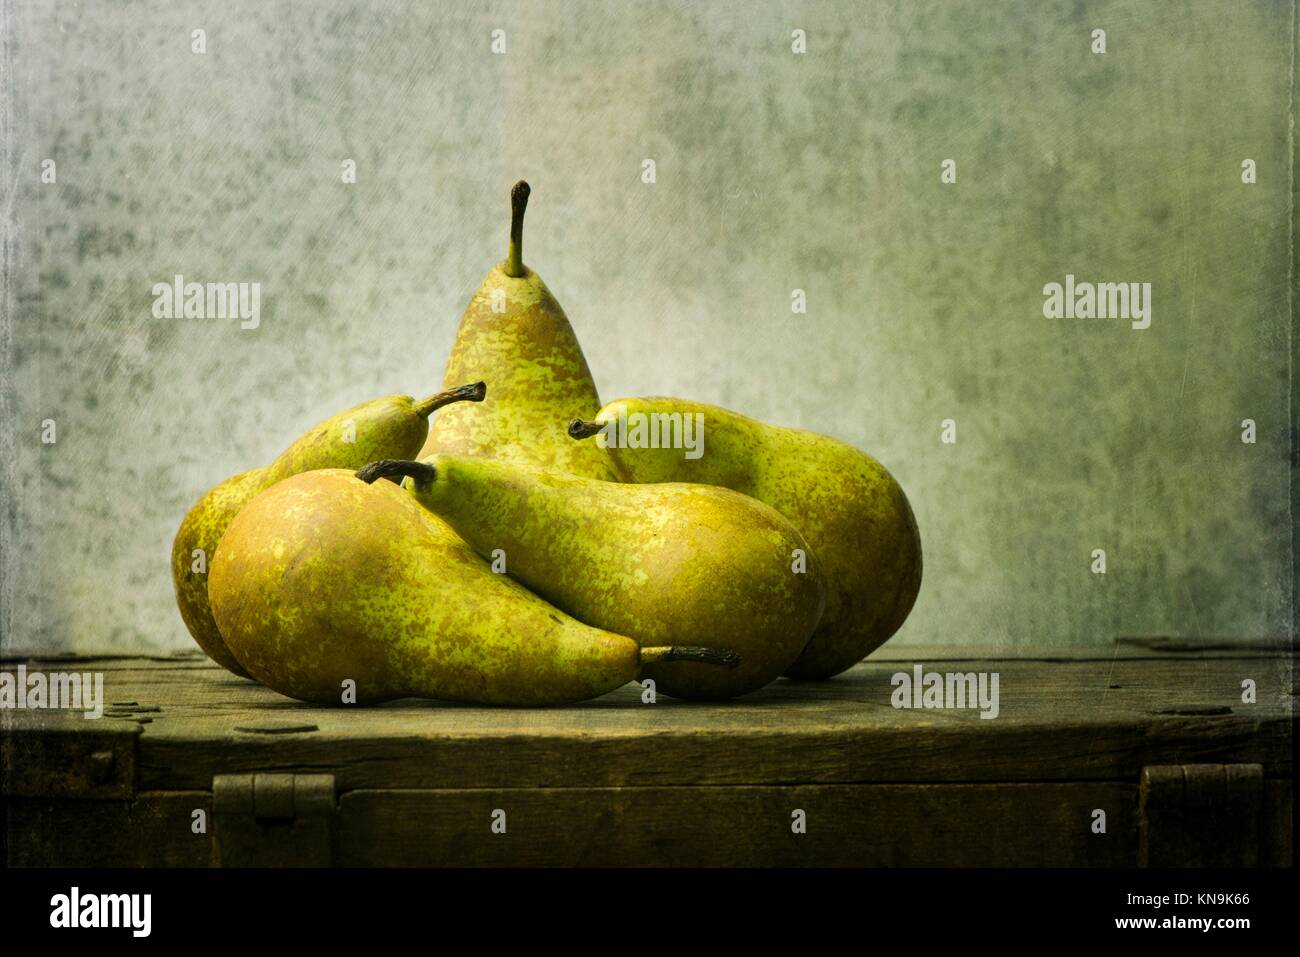 Fruit still life with pears on wooden table. Vintage rustic food image with artistic texture effect. - Stock Image